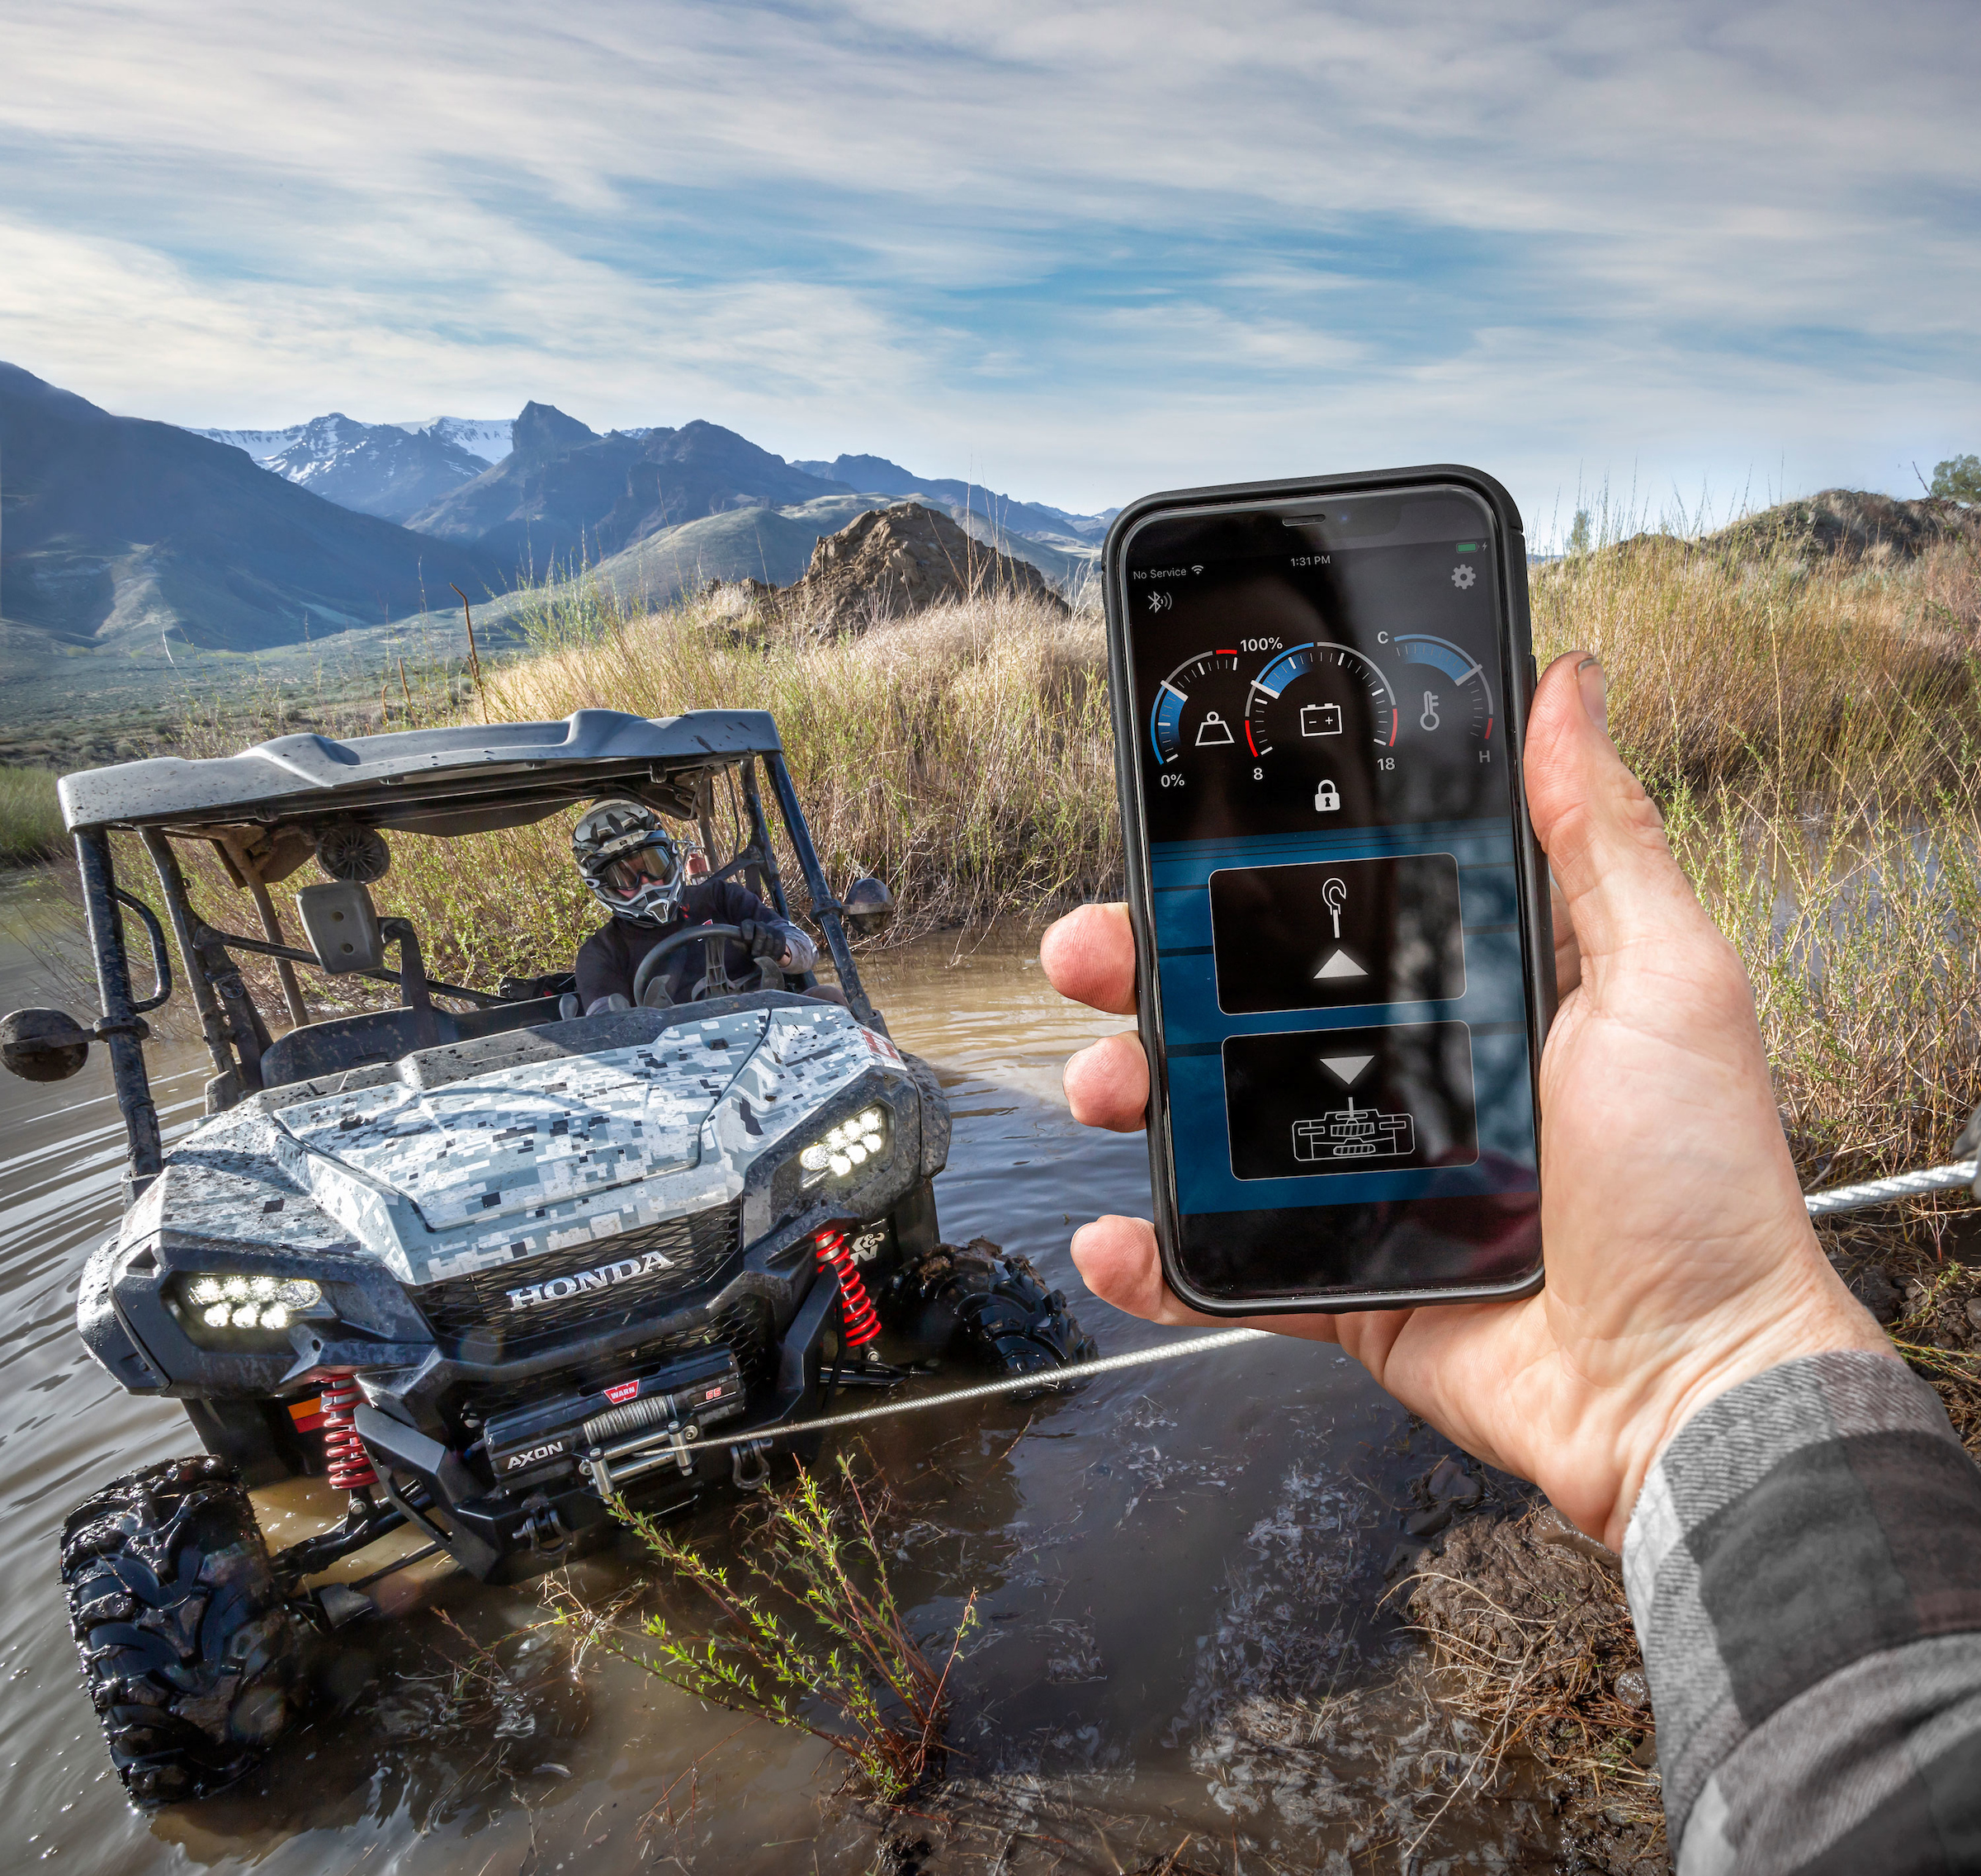 WARN HUB Receiver & App is a wireless winch remote shown here with WARN AXON.